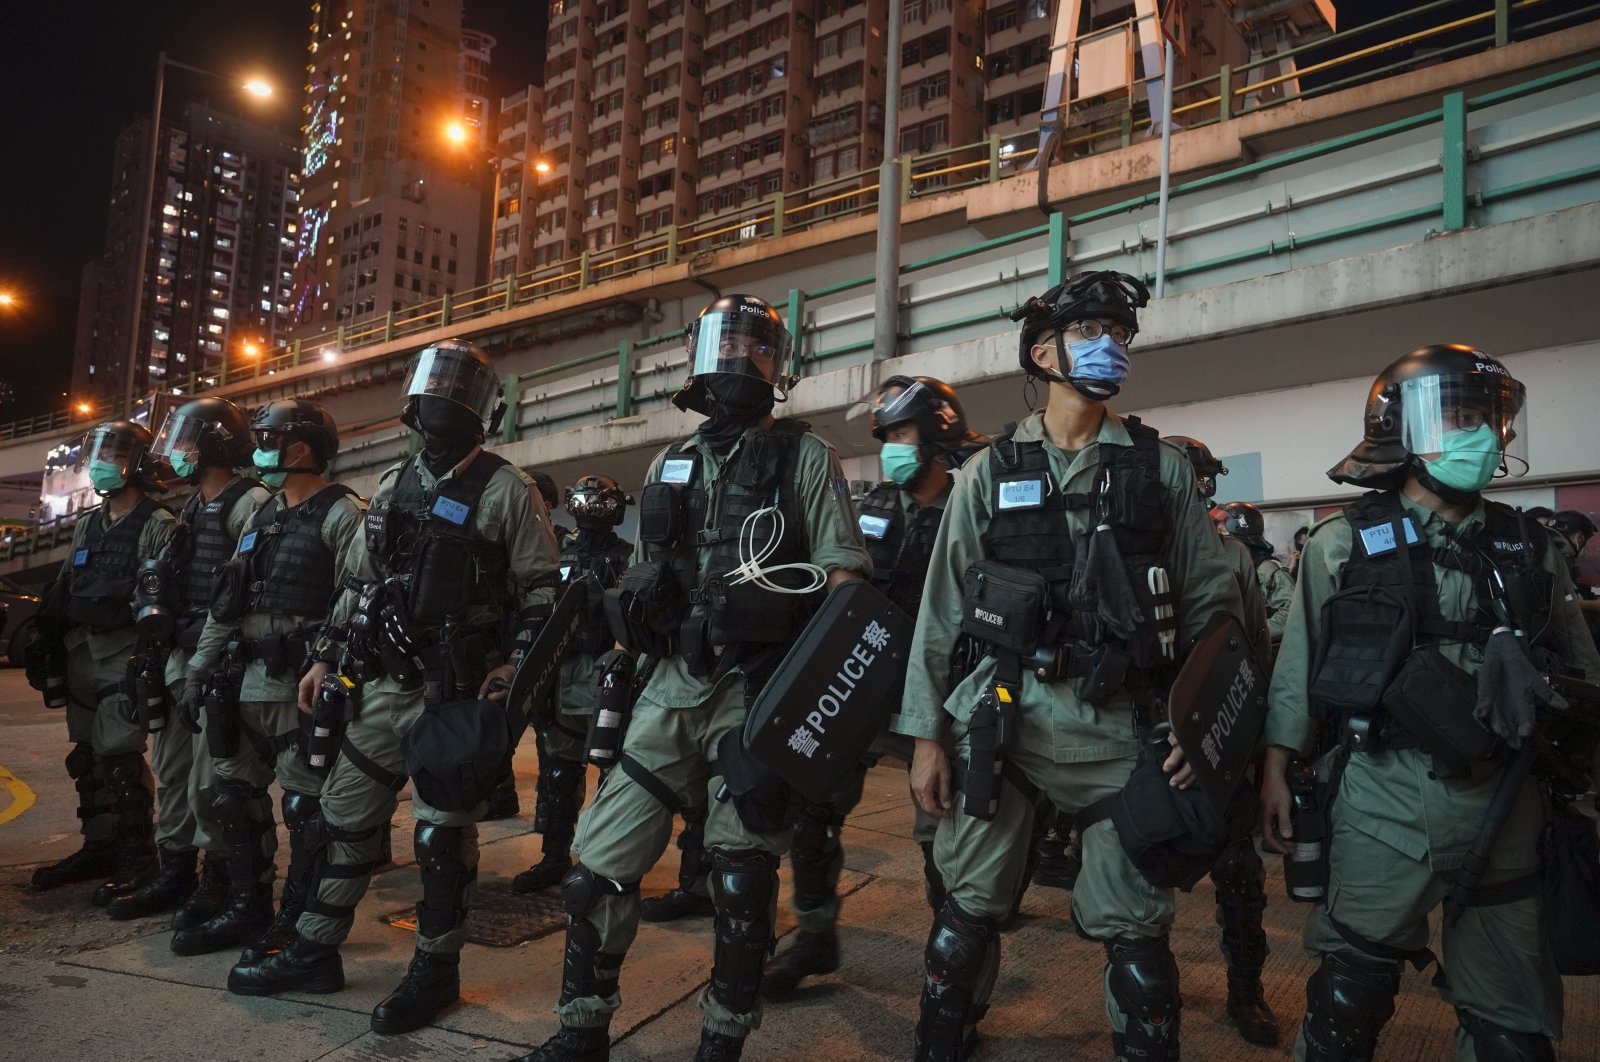 Riot police stand guard after pushing back protesters demonstrating against the new security law during the anniversary of the Hong Kong handover from Britain, Wednesday, July. 1, 2020, in Hong Kong. (AP Photo)